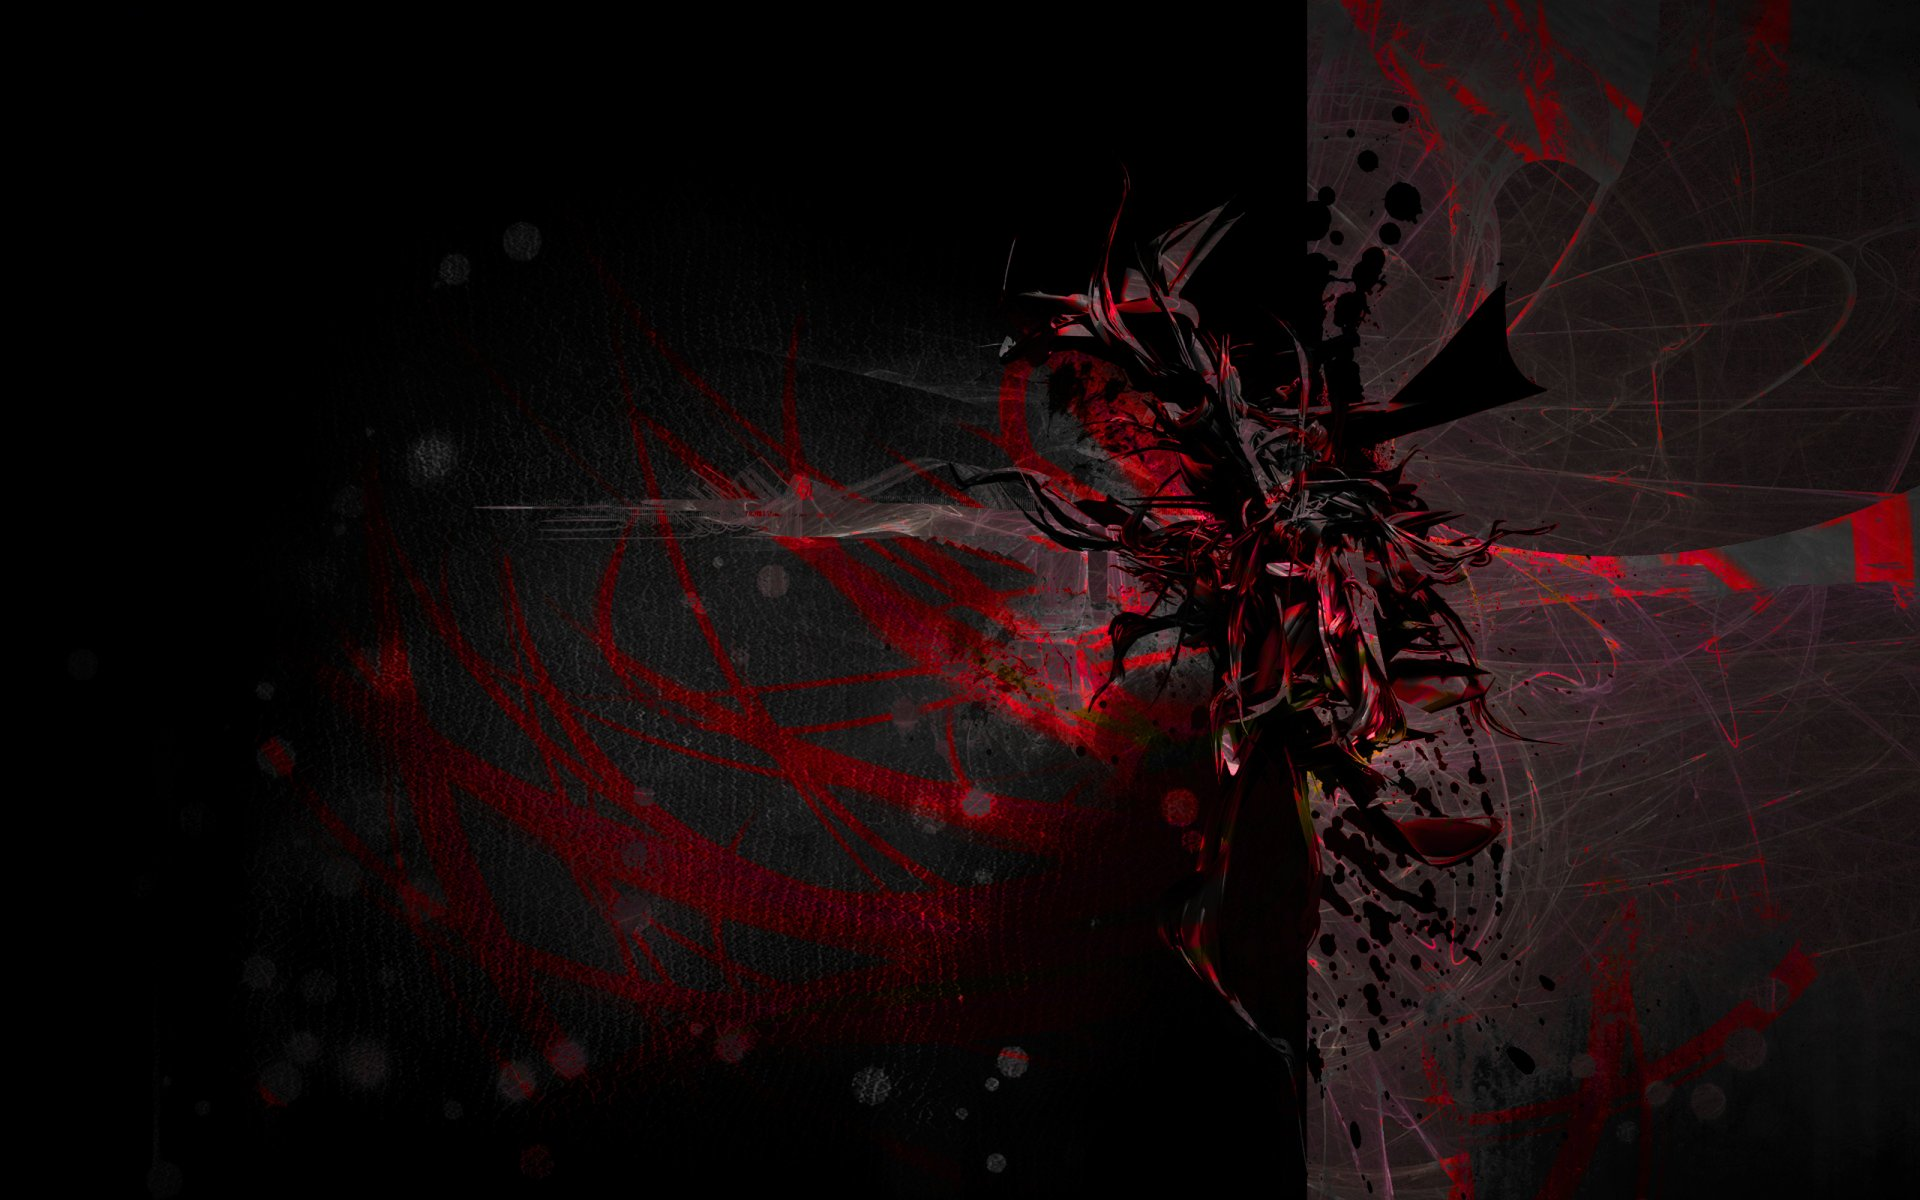 Abstract - Digital Art  Abstract Artistic Wallpaper